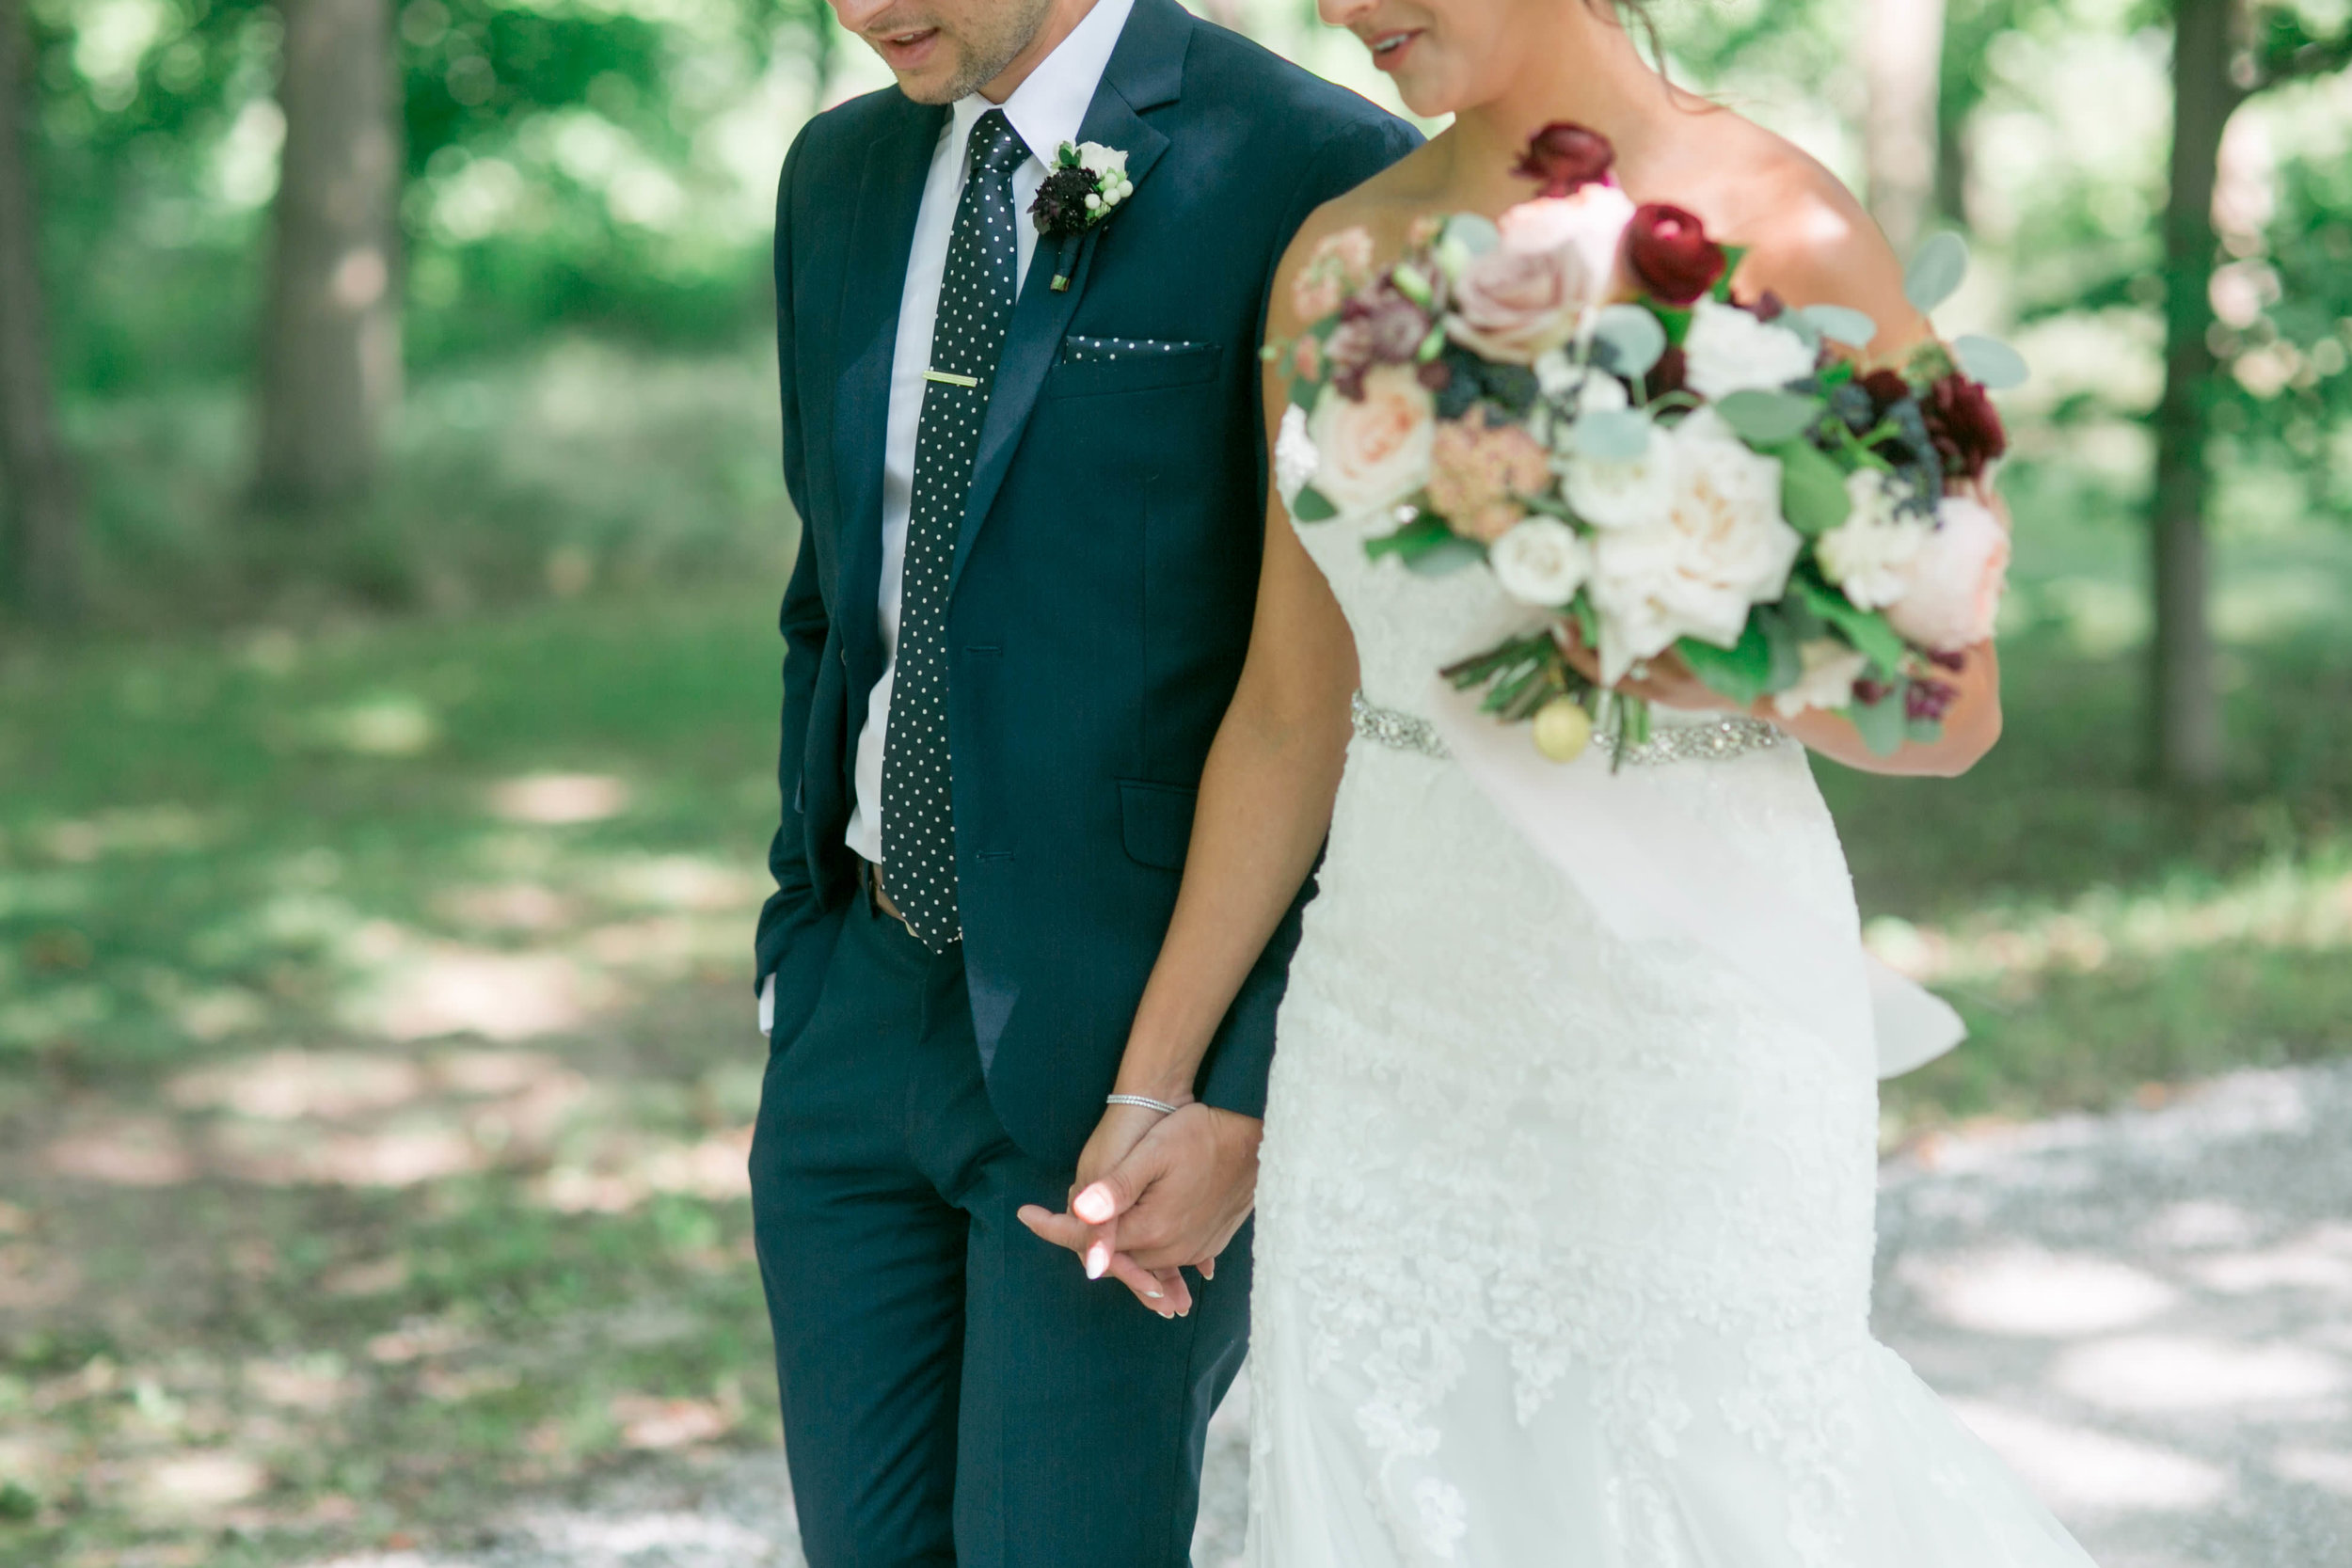 Sabrina___Jonathan_Wedding___High_Res._Finals_Daniel_Ricci_Weddings_205.jpg